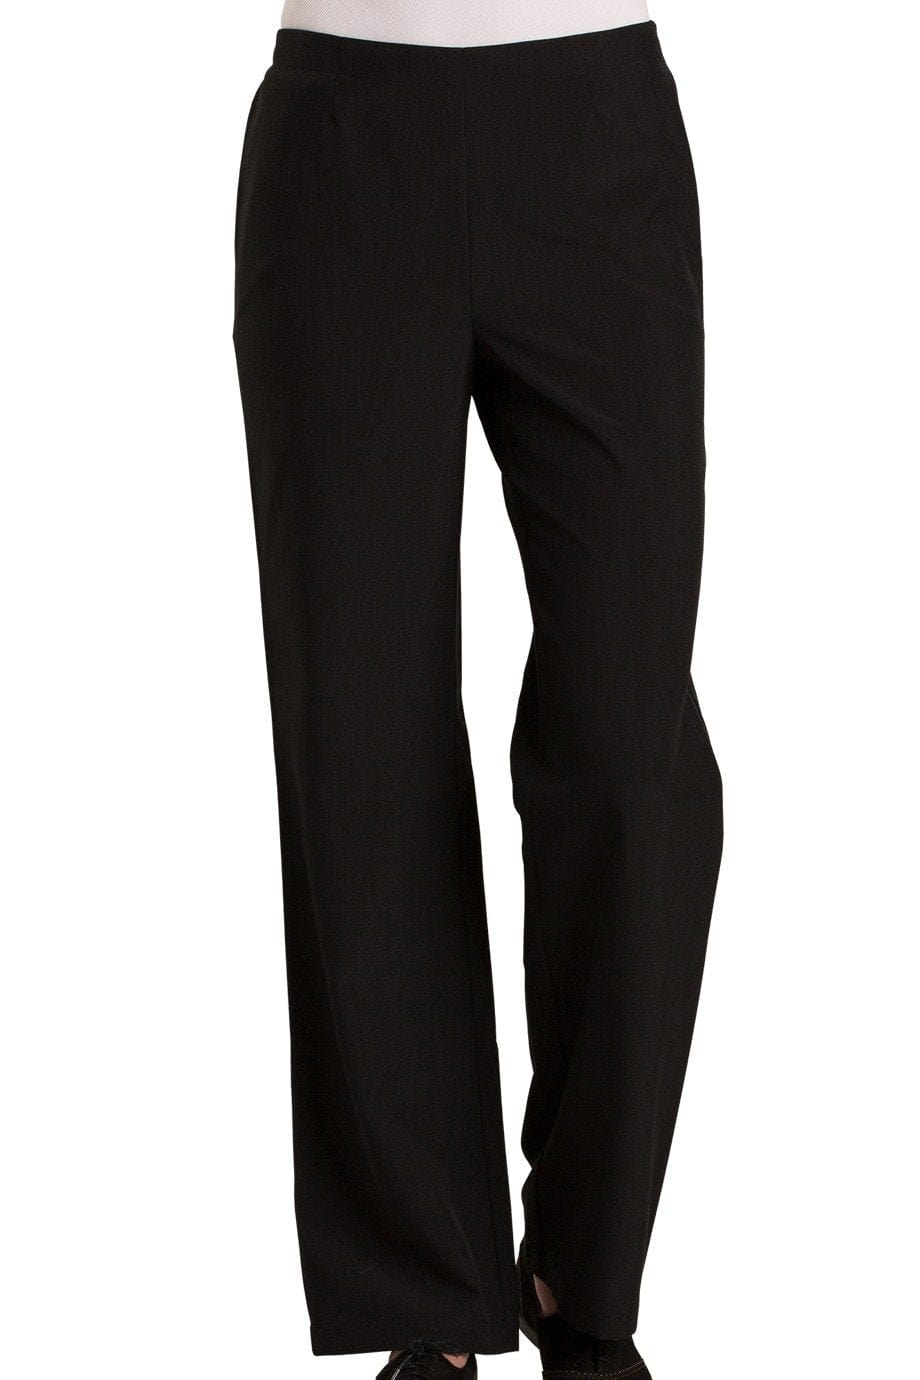 Black Pinnacle Women's Housekeeping Pant